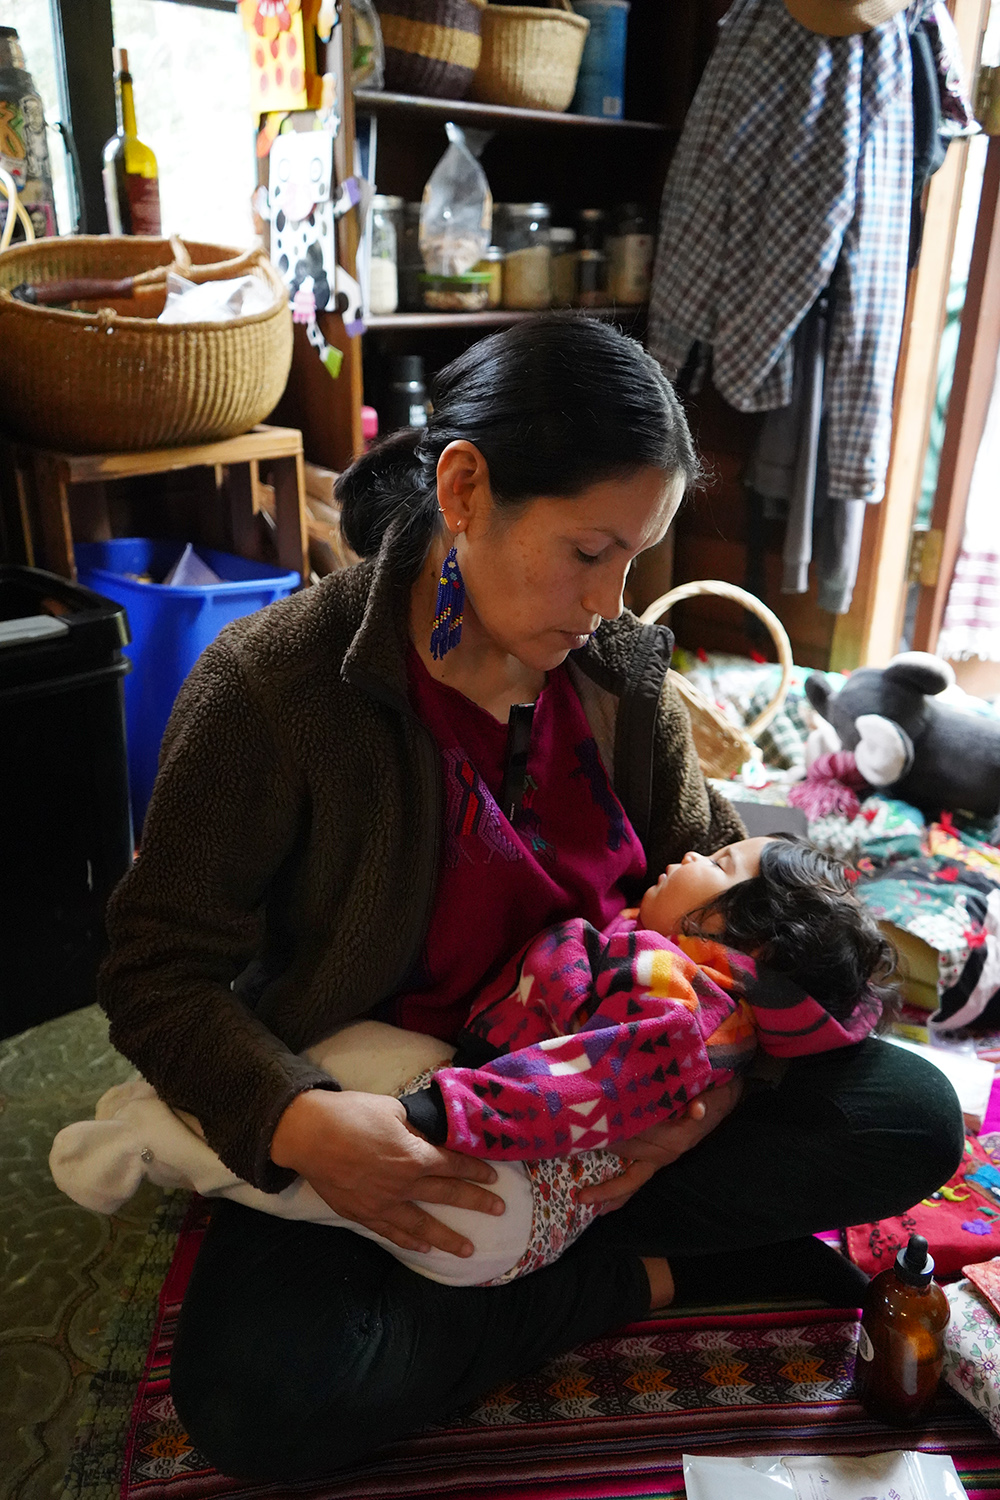 Midwife Maria Ramos Bracamotes cradles her baby at her home.